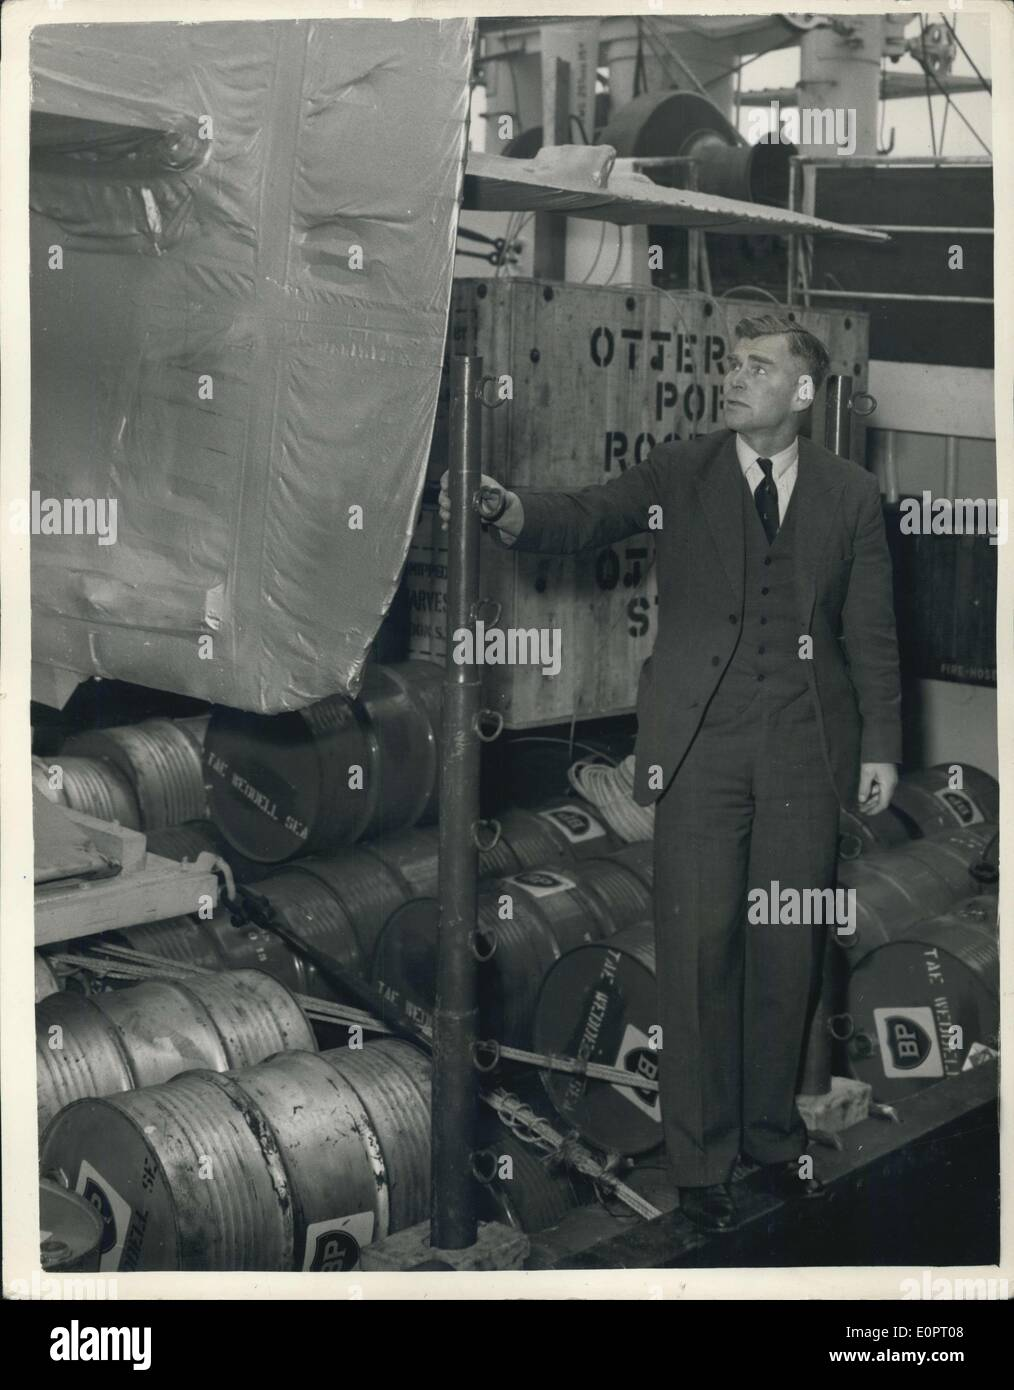 Nov. 15, 1956 - The Magga Dan leaves today for the Antarctic: The motor vessel Magga Dan sails from London today with the Commonwealth trans-Antarctic Expedition's main party for the Antarctic. Photo shows Dr. V. Fuchs, the leader of the expedition, inspects the tail unit of the Otter aircraft on board the Megga Den Butler's Wharf, Tower Bridge this morning. - Stock Image